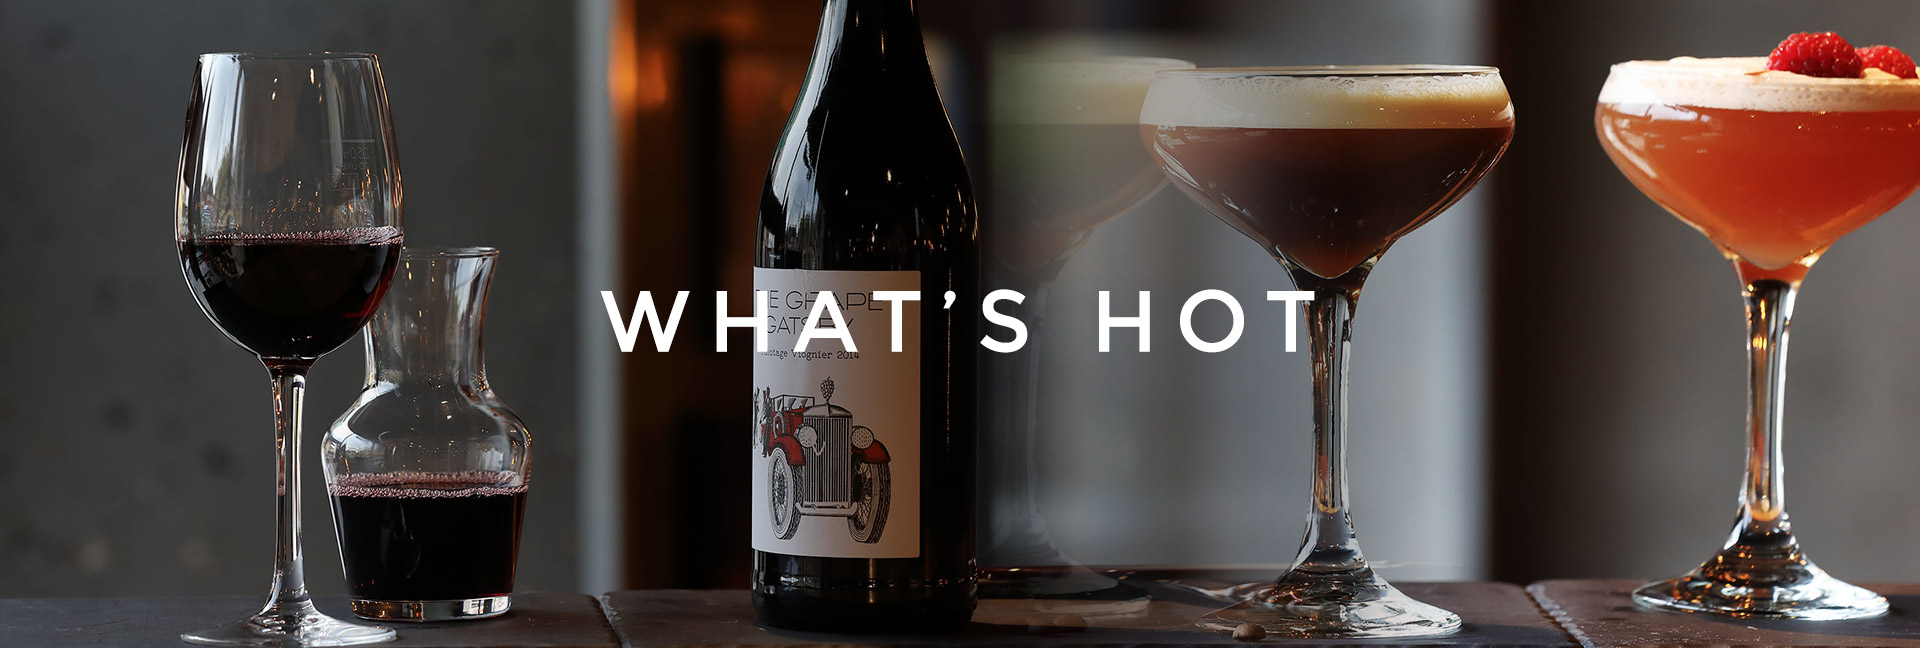 What's Hot at All Bar One Leicester Square